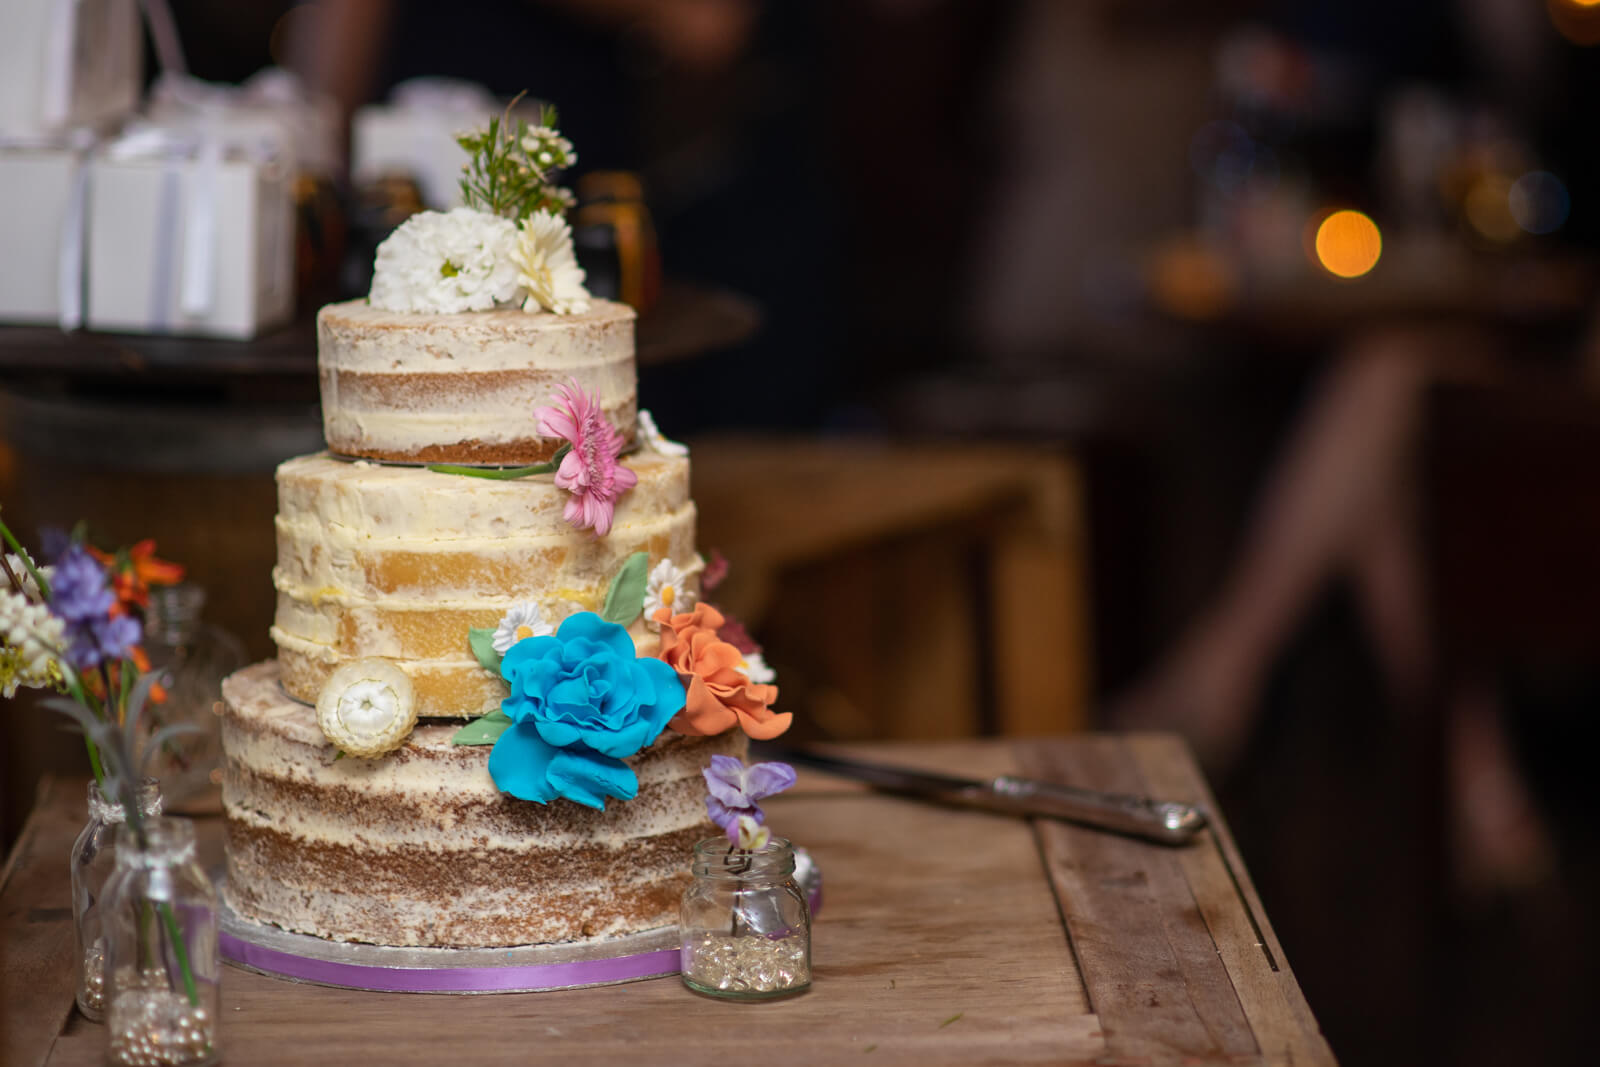 Naked wedding cake with colourful flower decorations